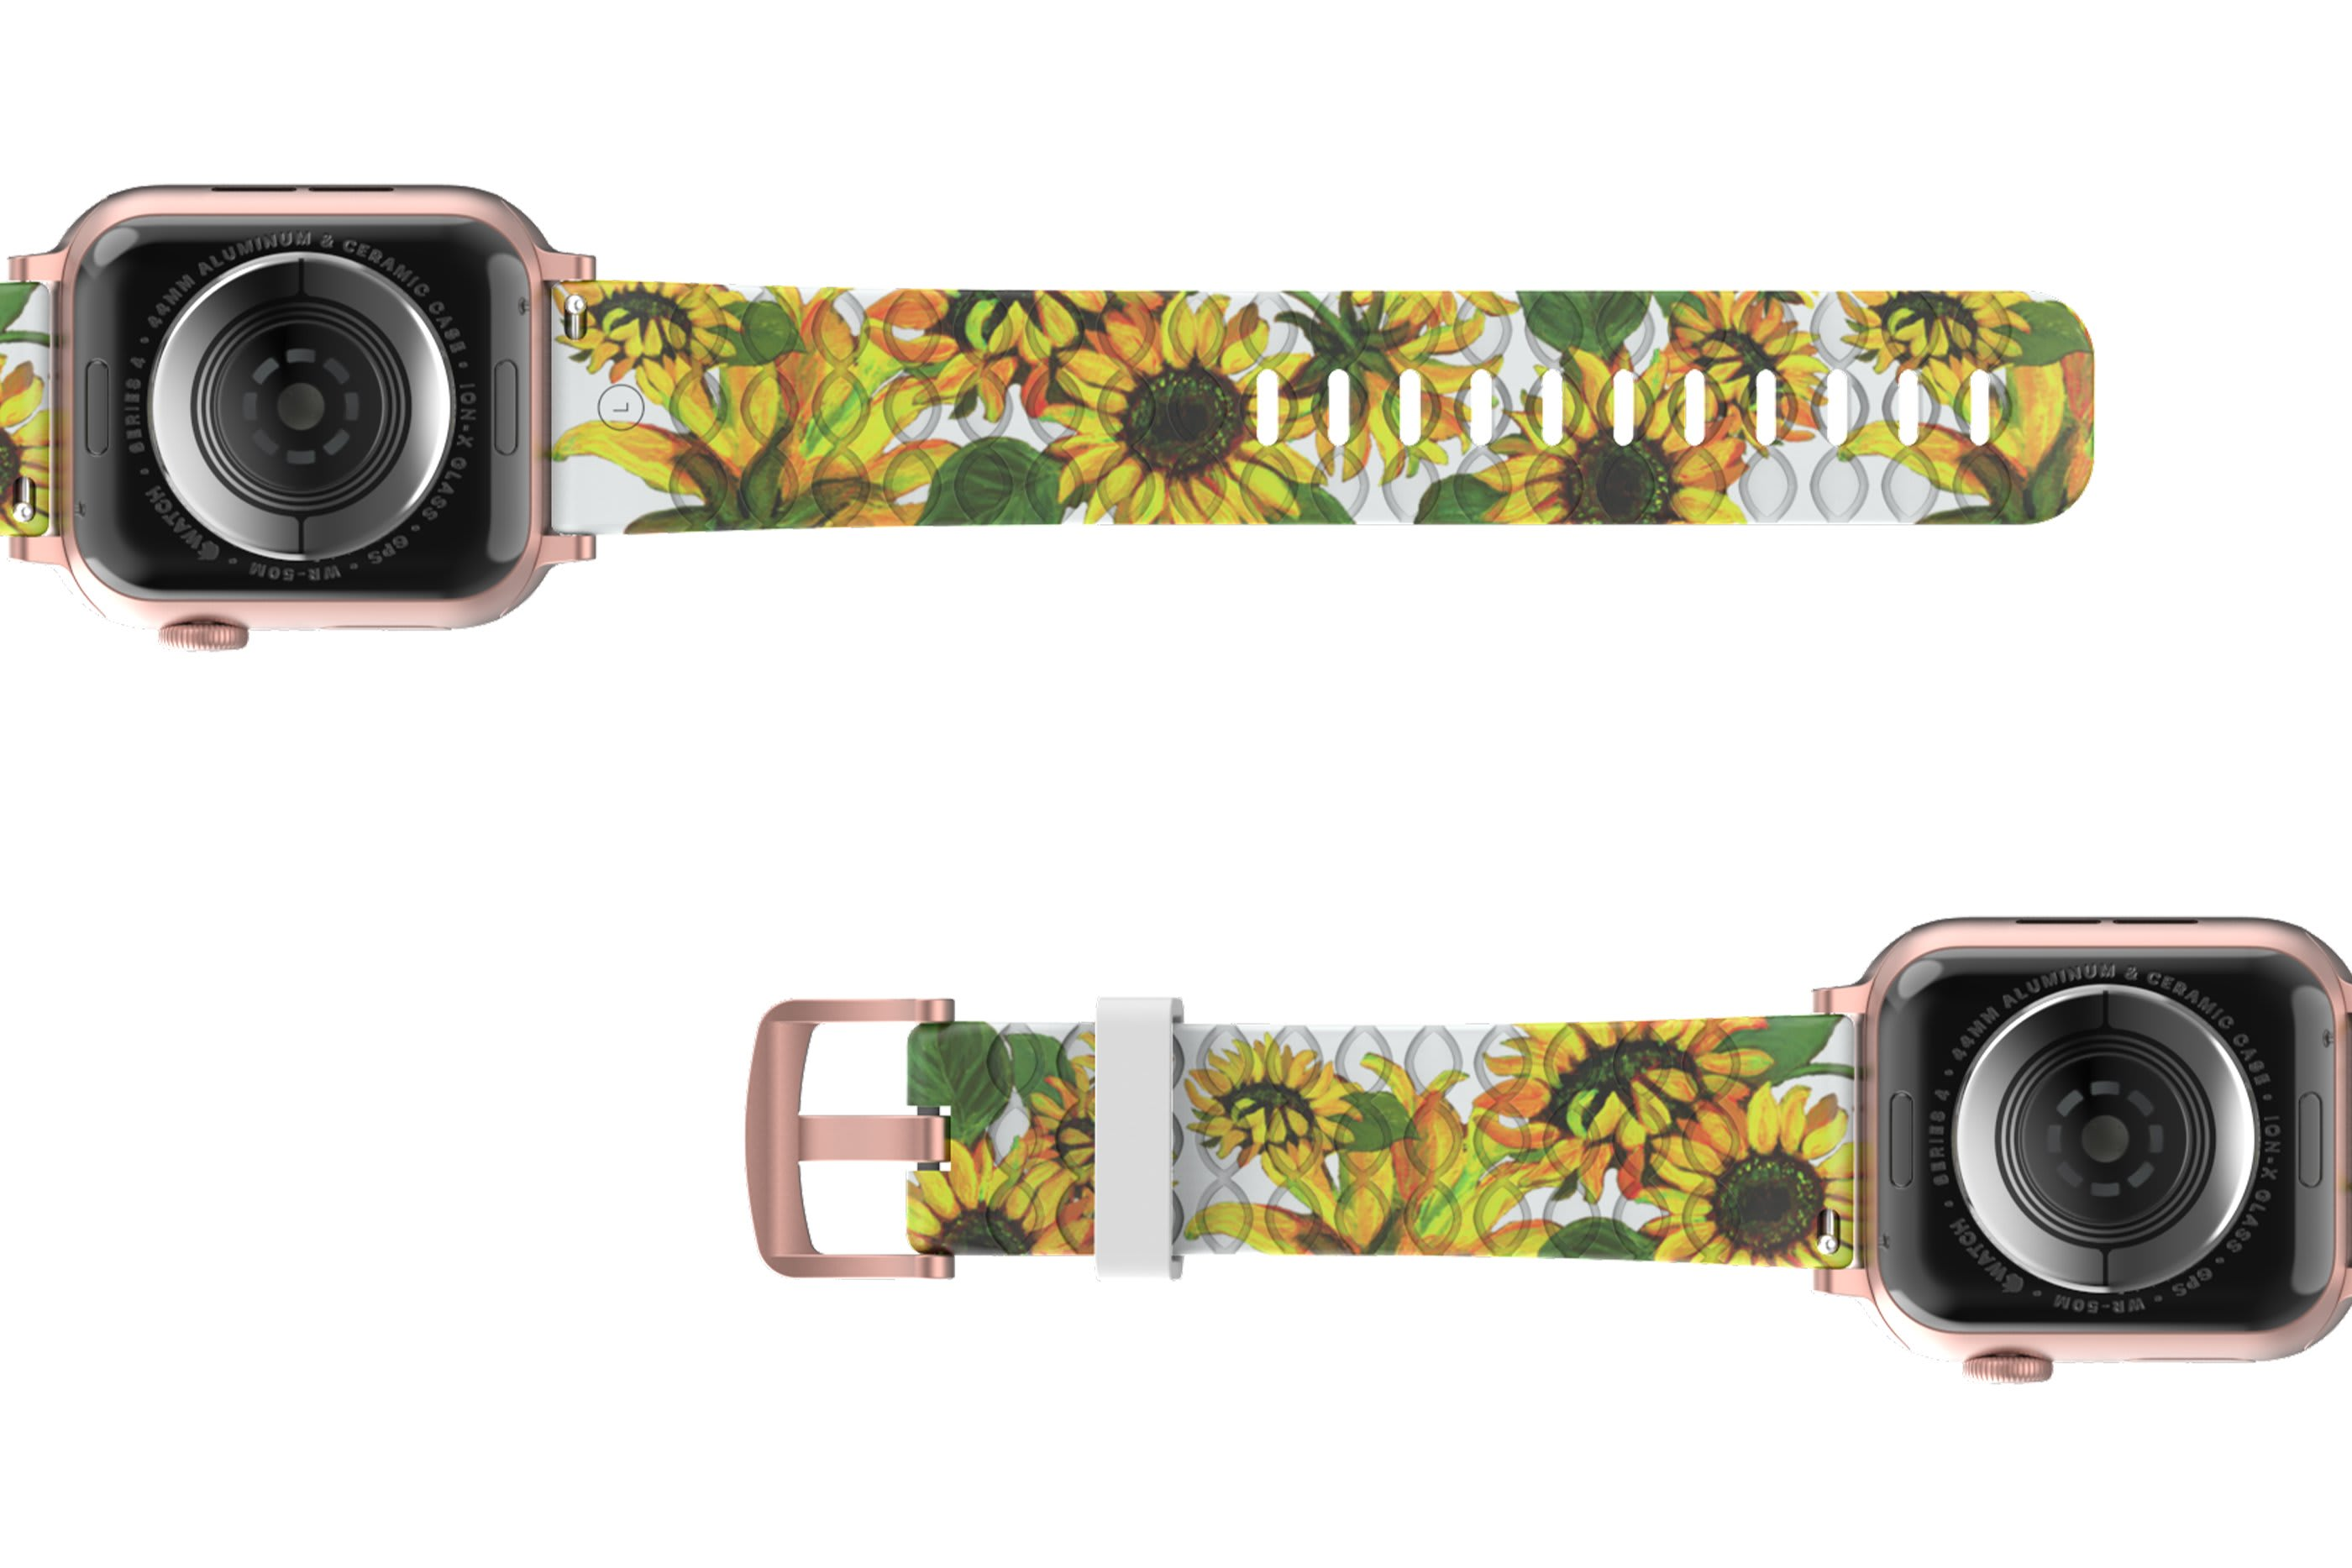 Sunflower Apple Watch Band with rose gold hardware viewed bottom up